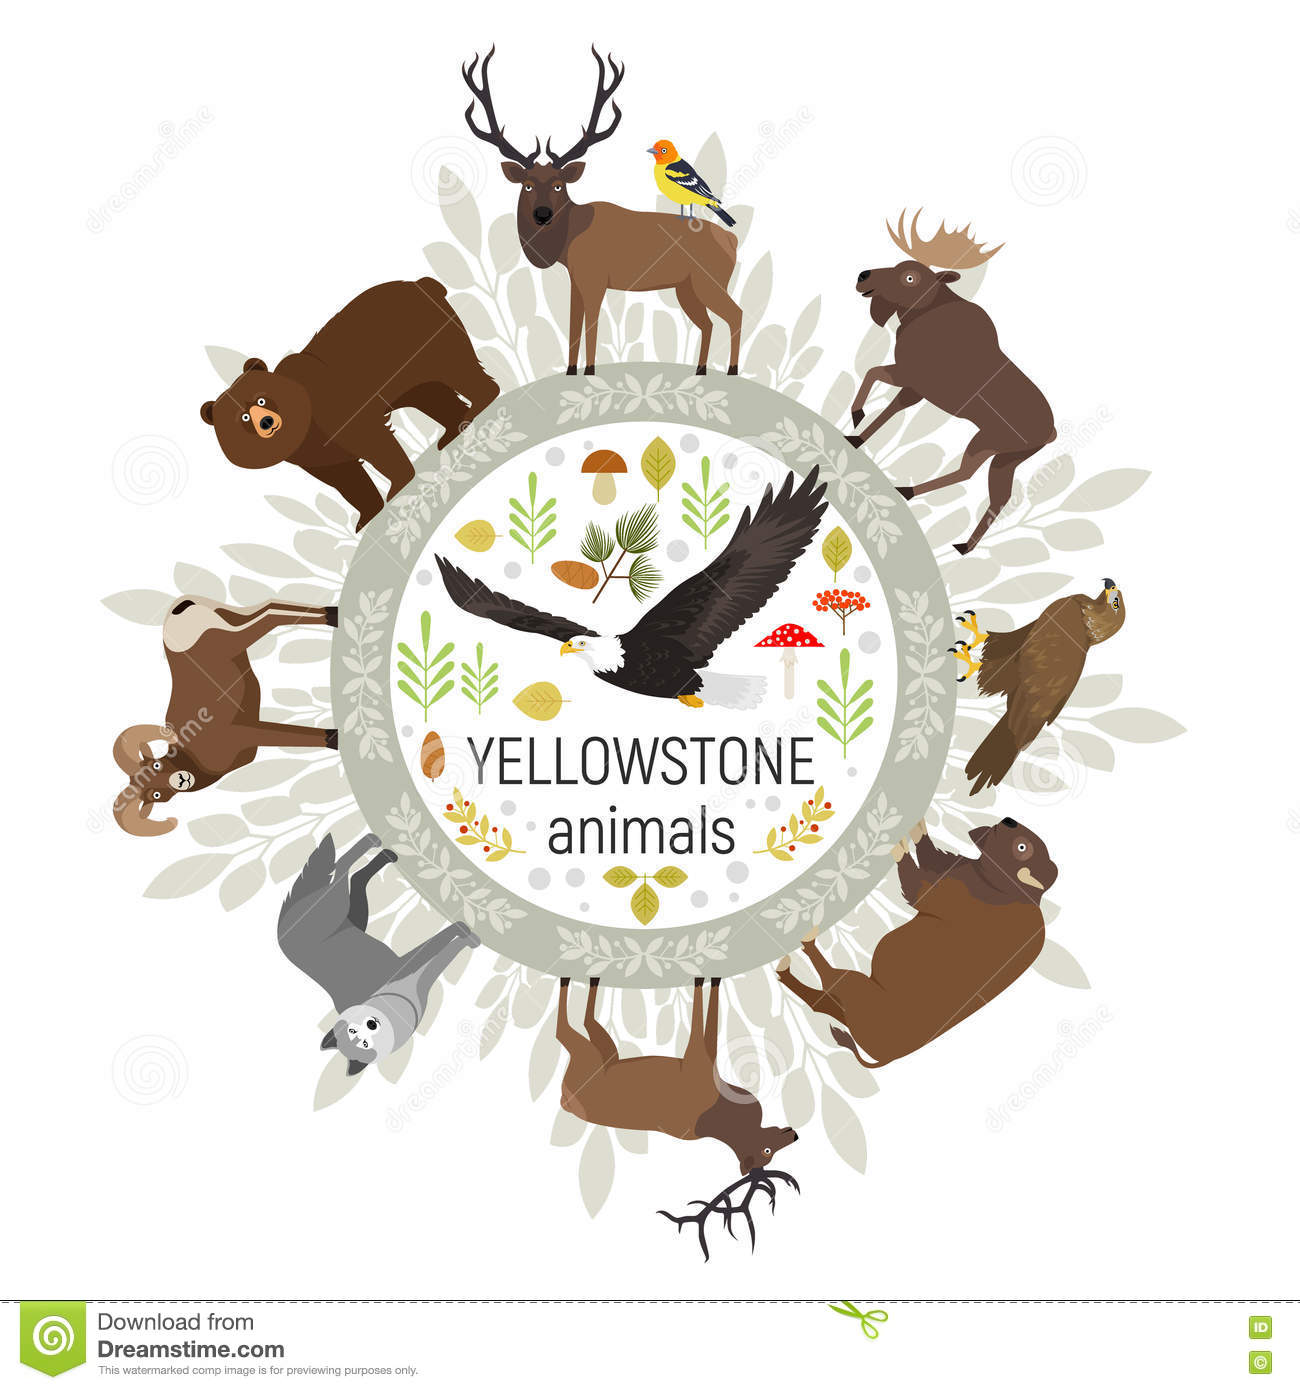 Circle Vector Template Of Yellowstone National Park Stock Bald Eagle Diagram Golden Related Keywords Suggestions Animals Grizzly Moose Elk Bear Wolf Bison Bighorn Sheep Western Tanager